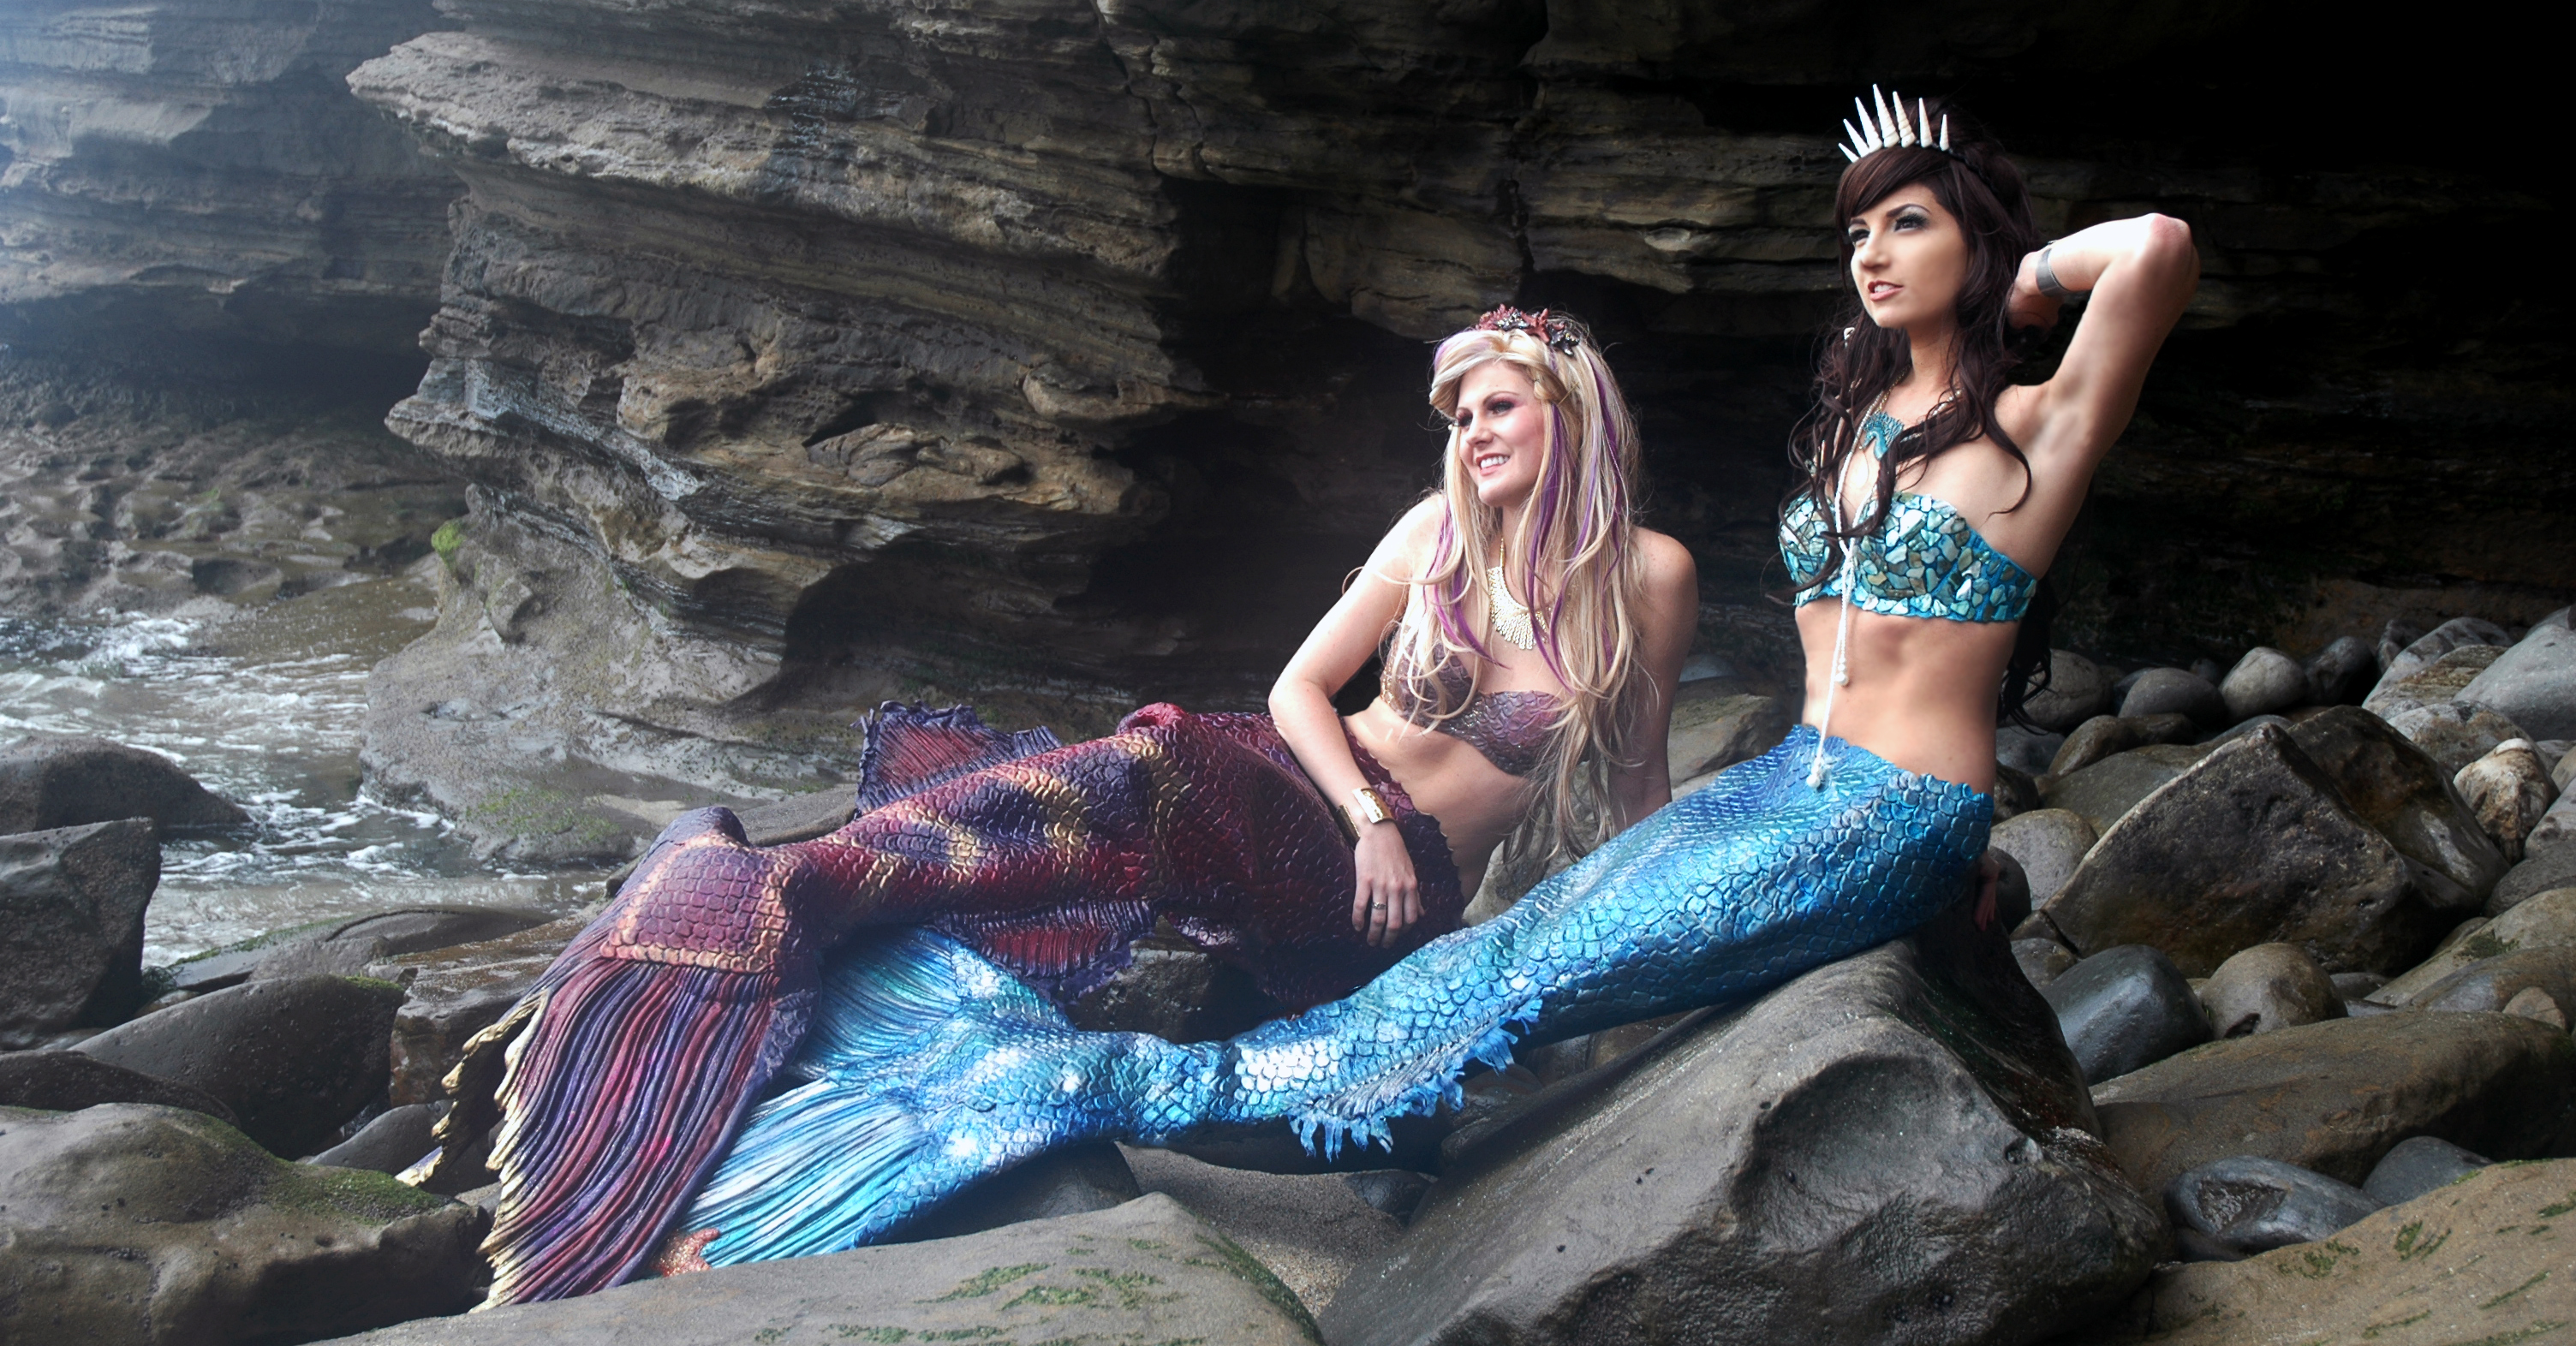 Pirates mermaid pussy pics hentia woman